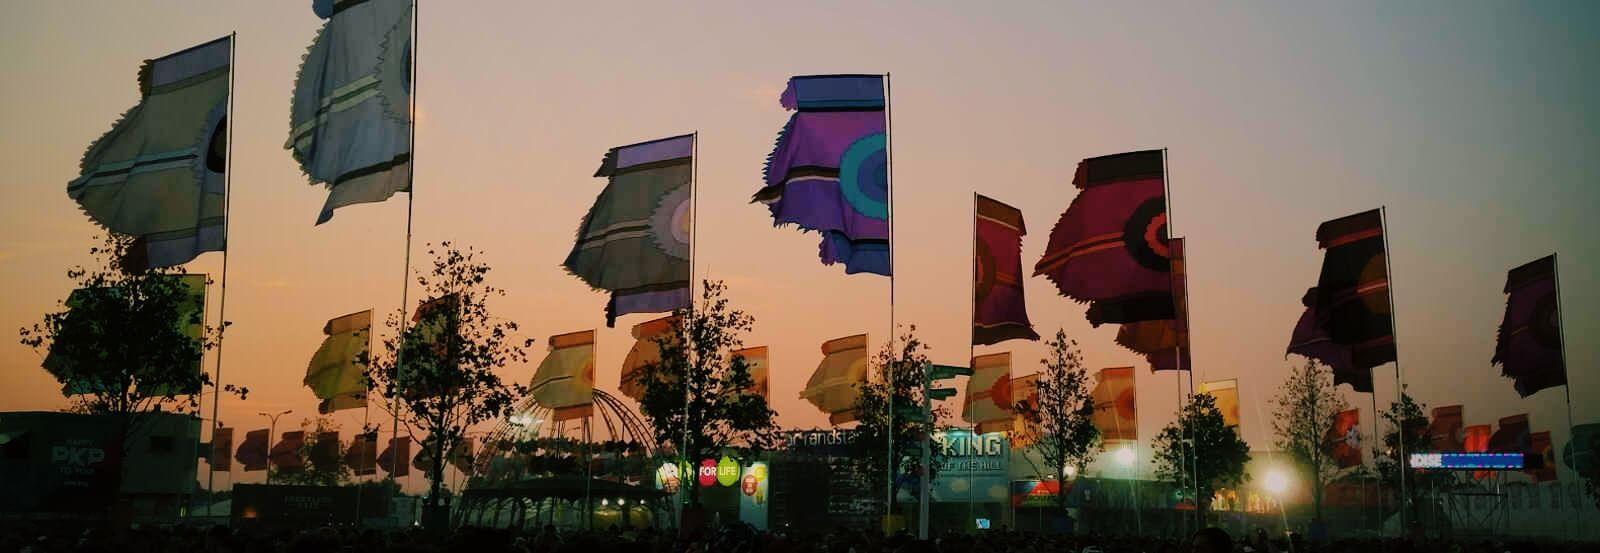 Music festival scene with flags and sunset